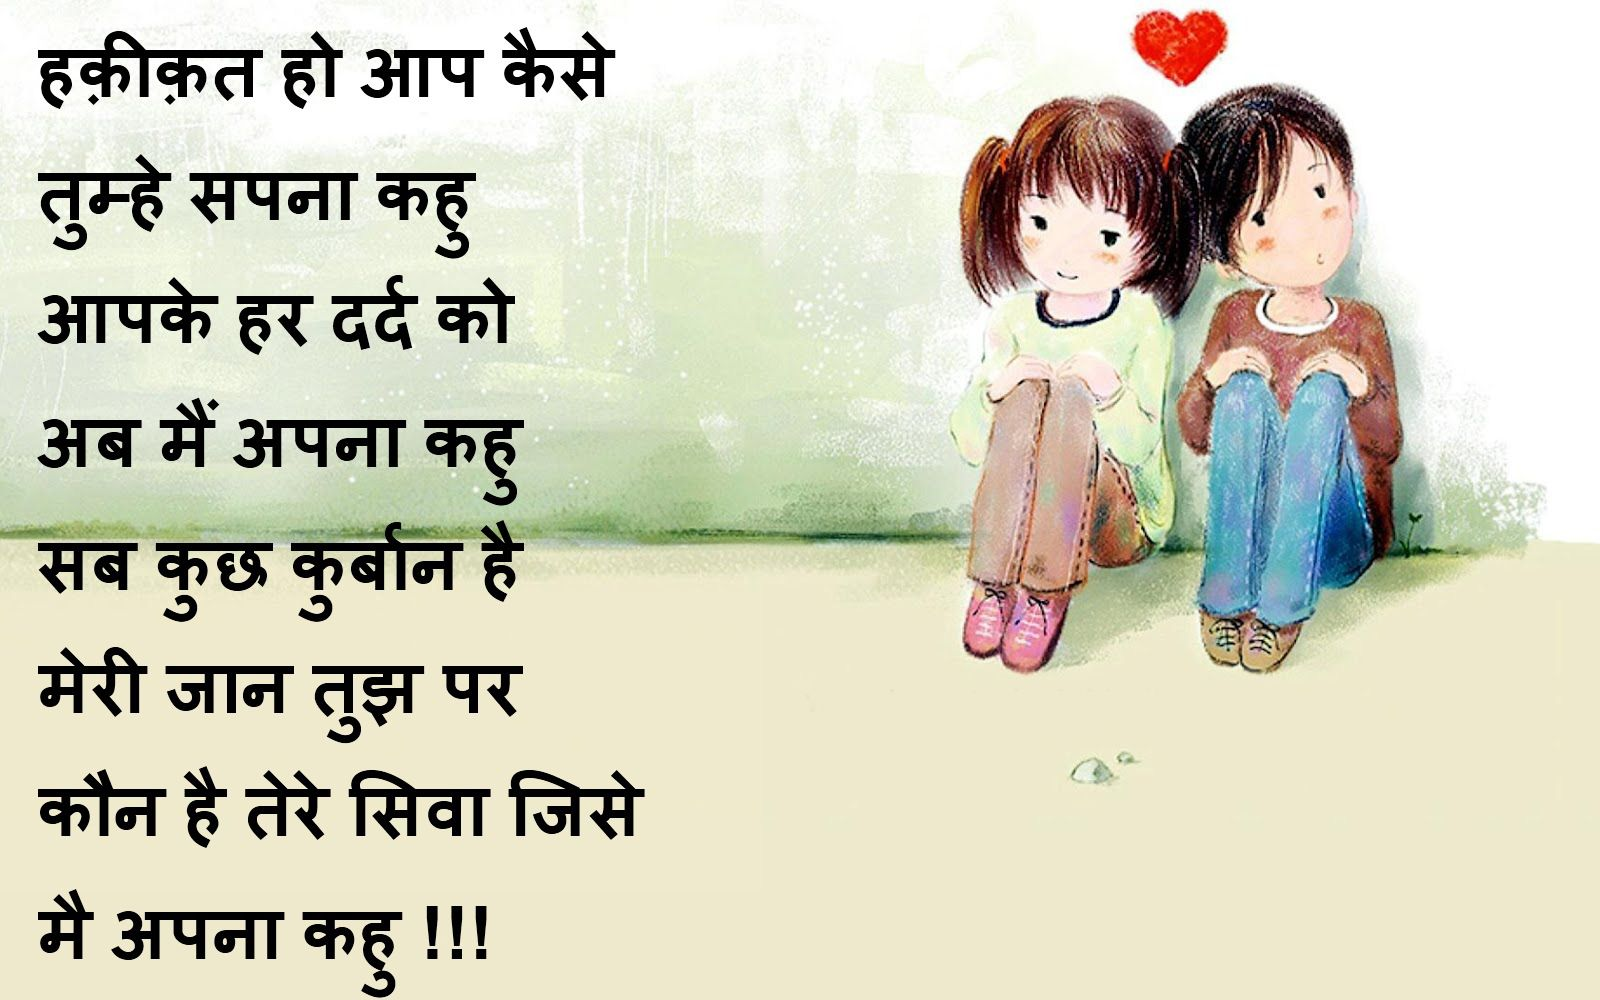 Hindi Shayari Hd Wallpapers Beautiful Love Quotes Love